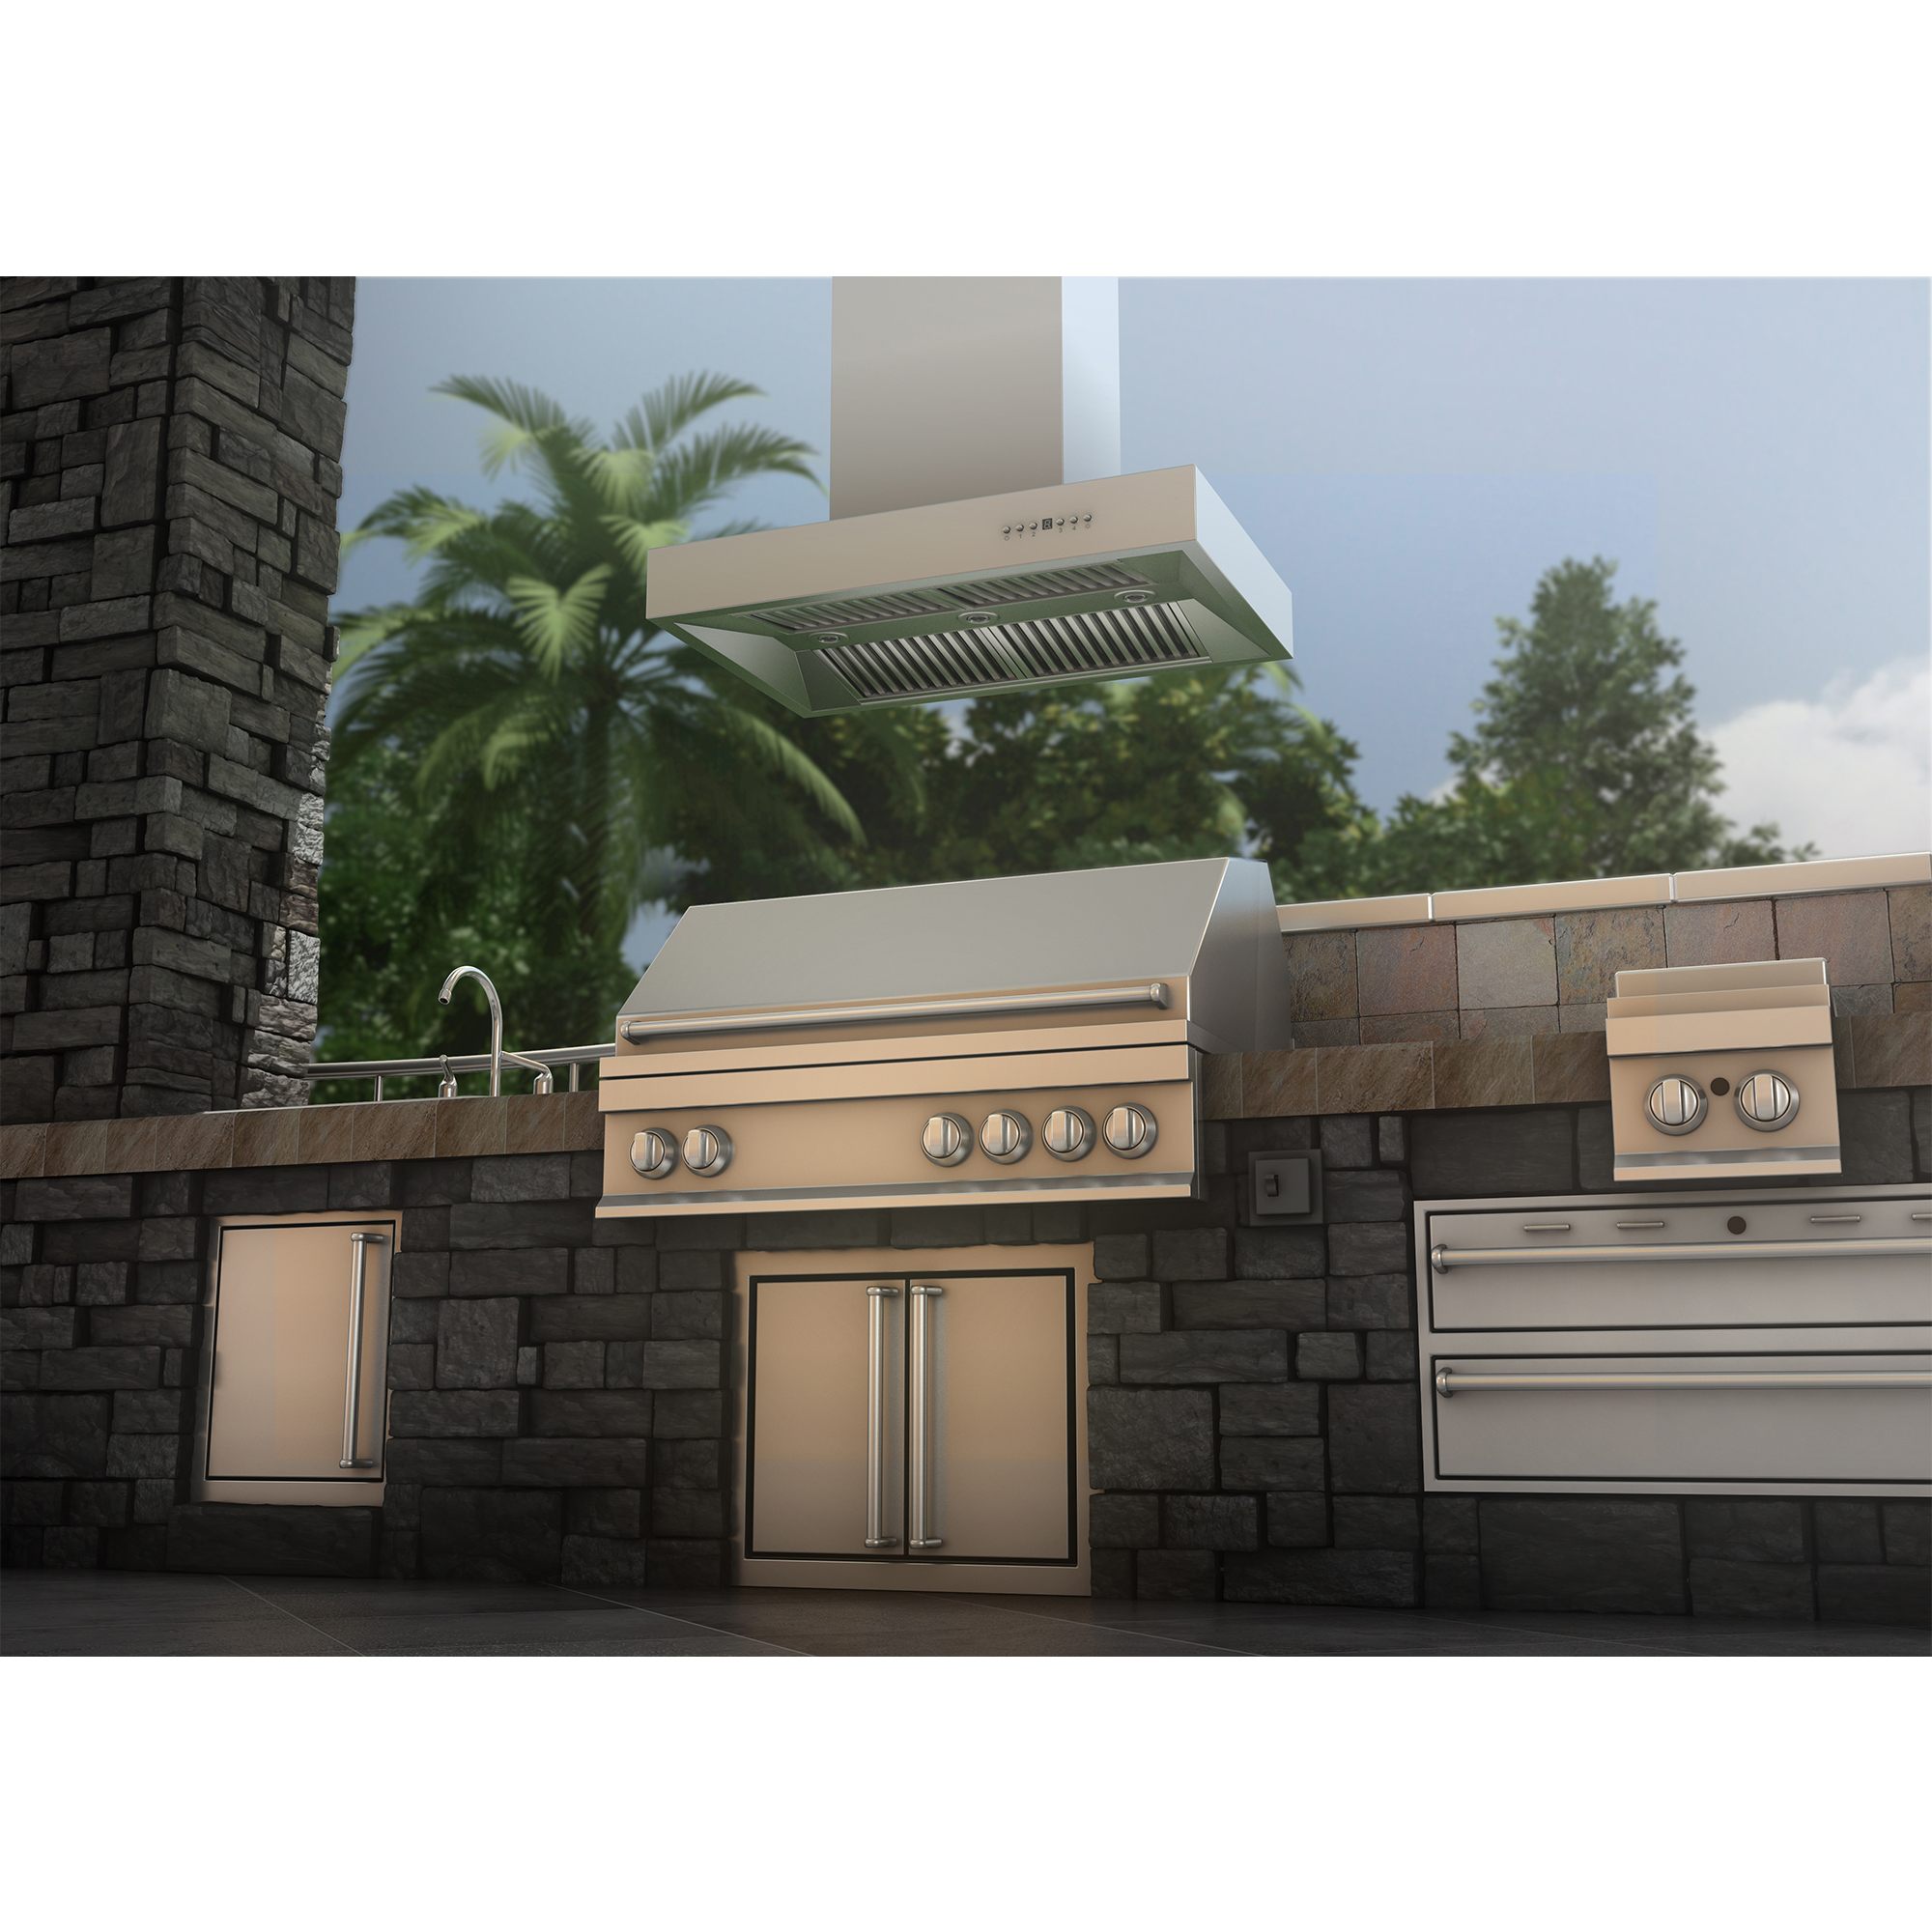 zline-stainless-steel-island-range-hood-KECOMi-kitchen-outdoor-3.jpg